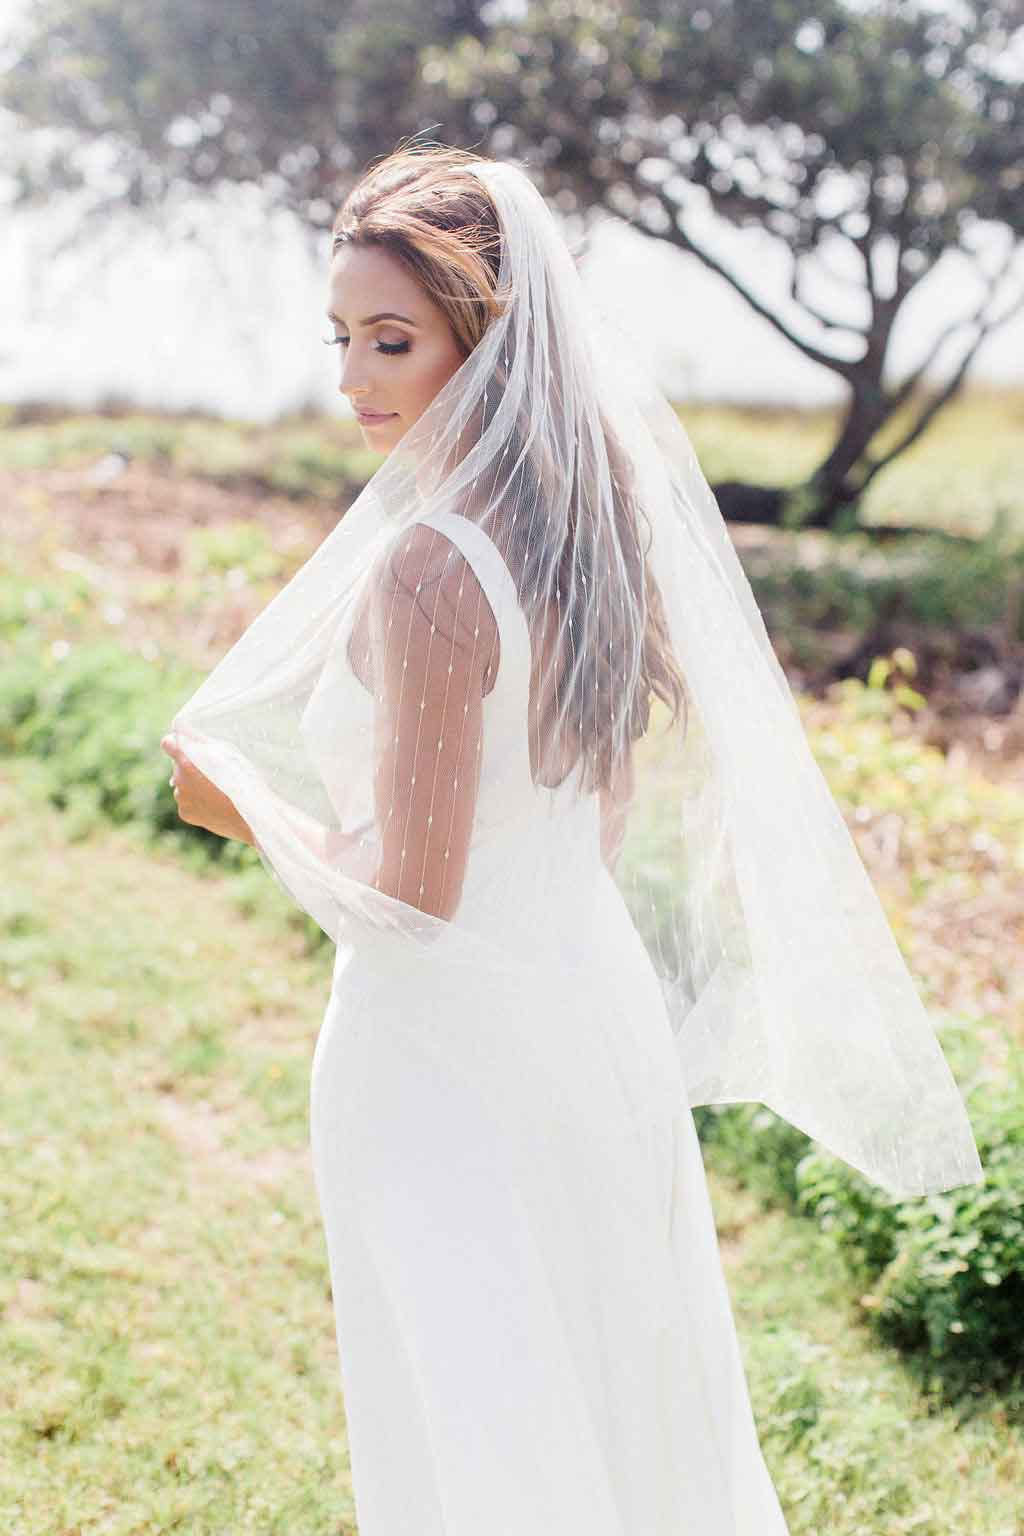 Bride looking over her shoulder wearing fingertip Jasmine bridal veil embroidered with gold thread outside at her wedding